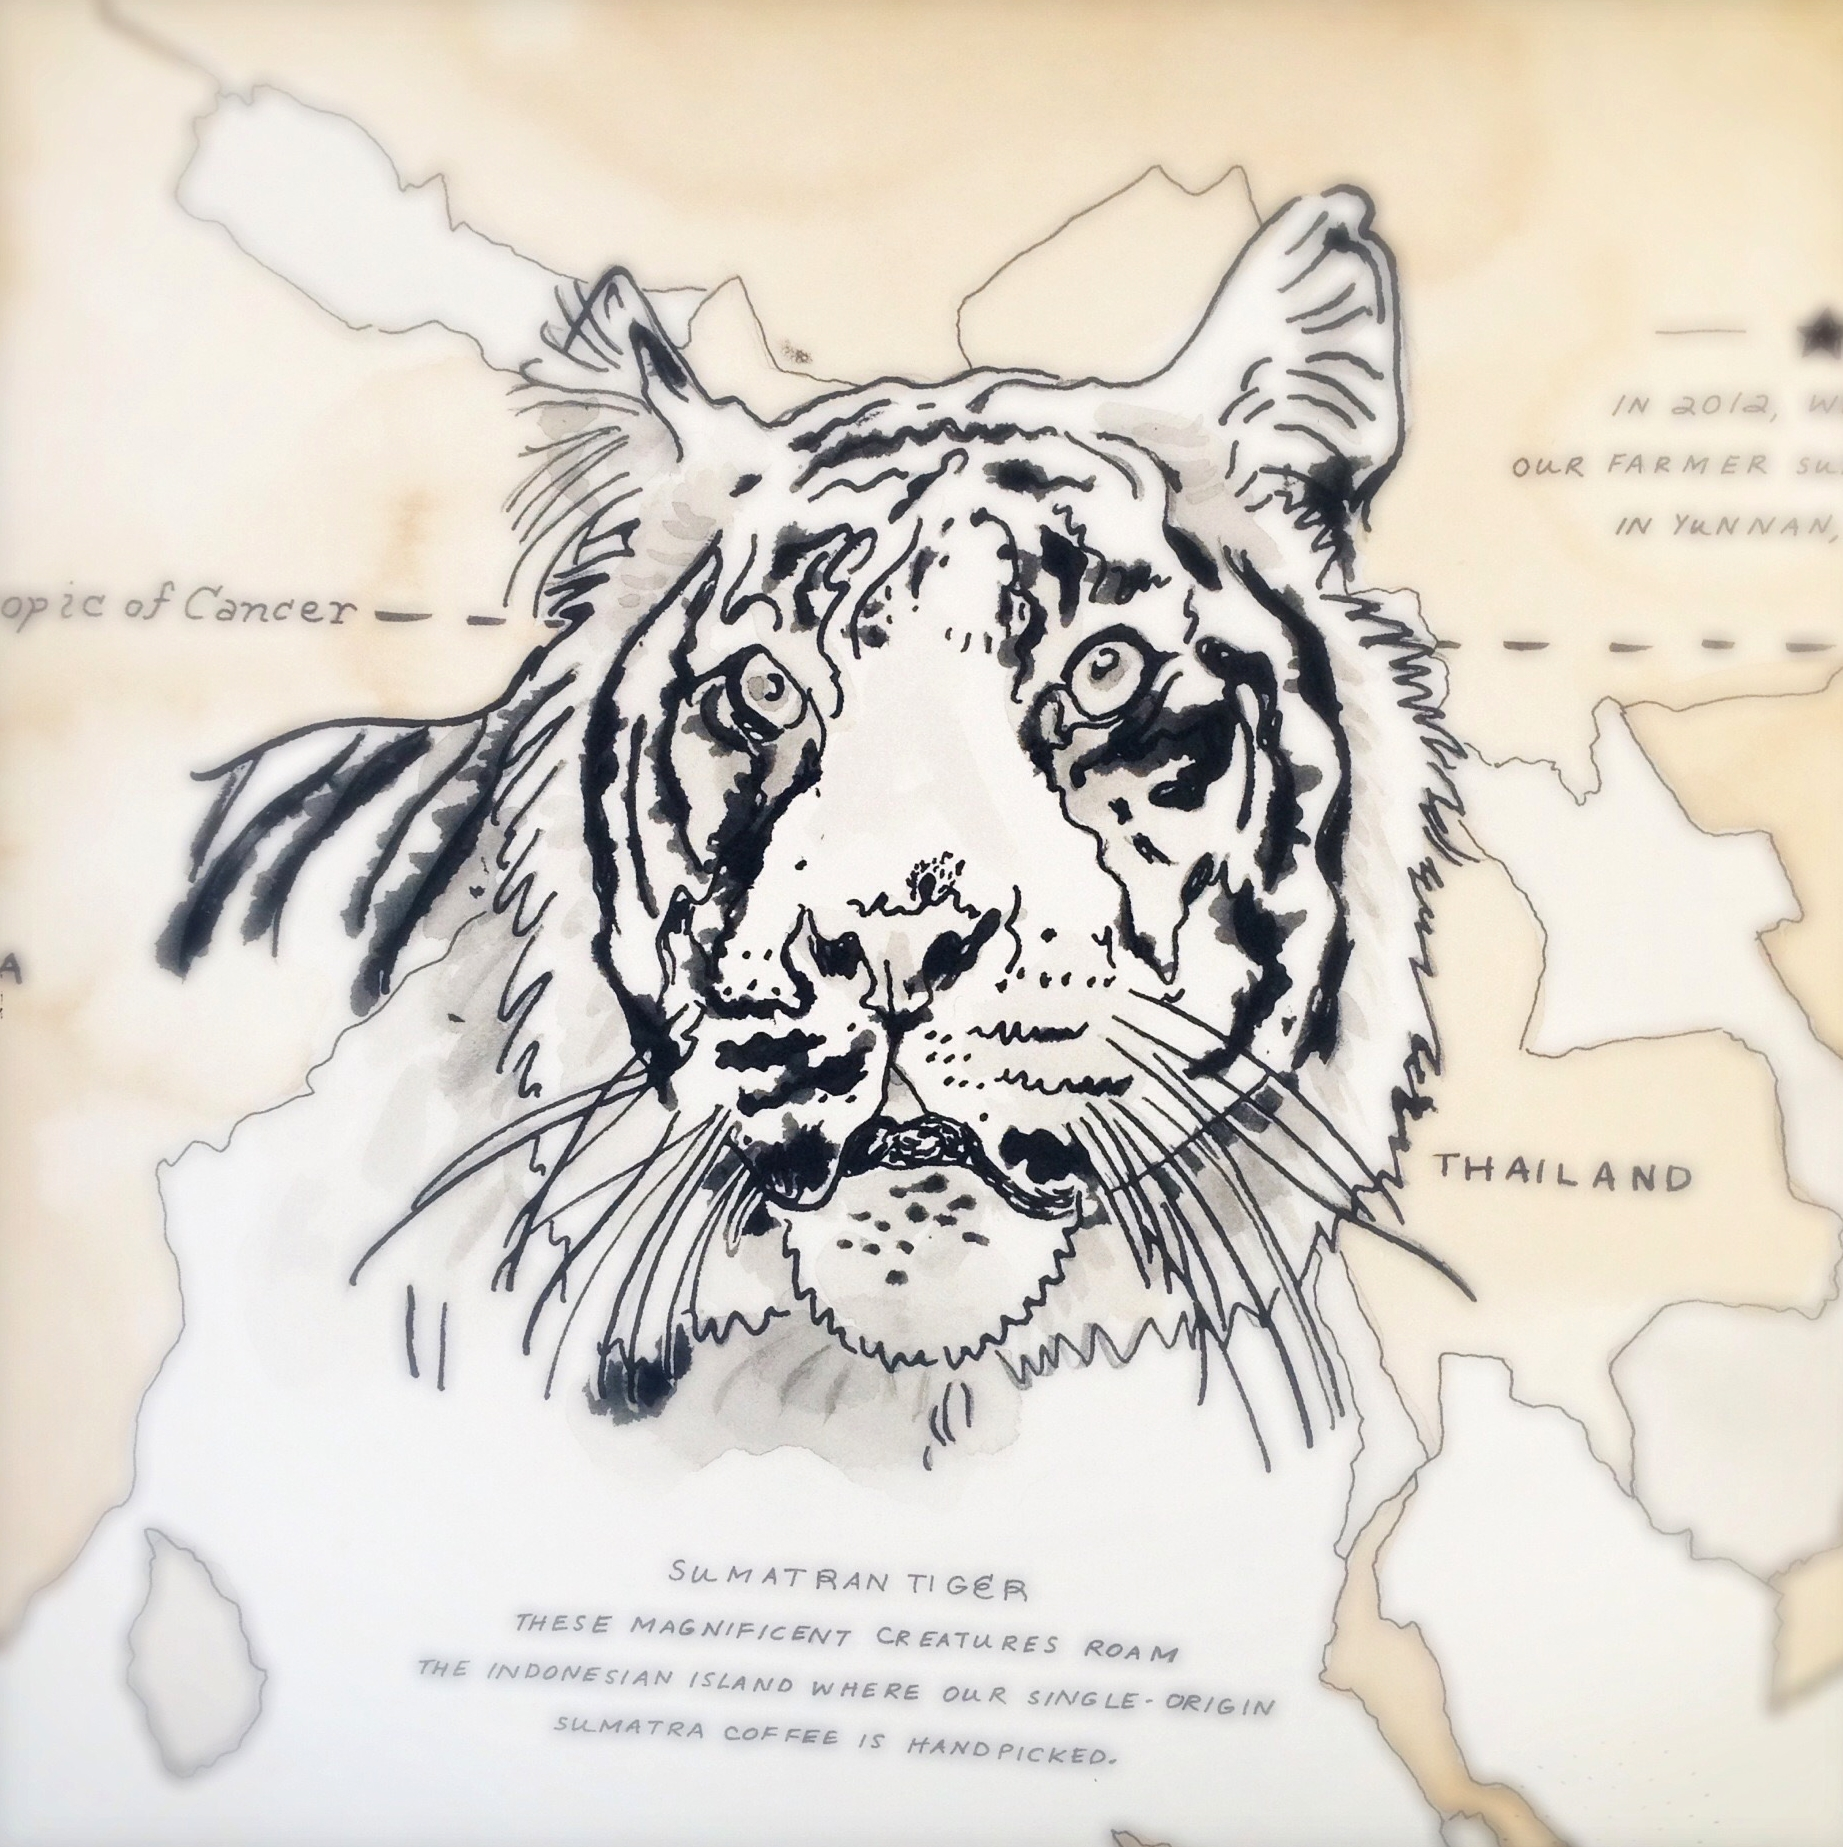 The Sumatran tiger was completed using Inkblot technique.  As a result, the markings on the coat and face are far richer and wilder.    Inkblot creates an expressive uncontrolled mark. It's made through transfer on trace paper. It's incredibly laborious but well worth the effort. This technique was the finishing touch on all the maps created for Starbucks.